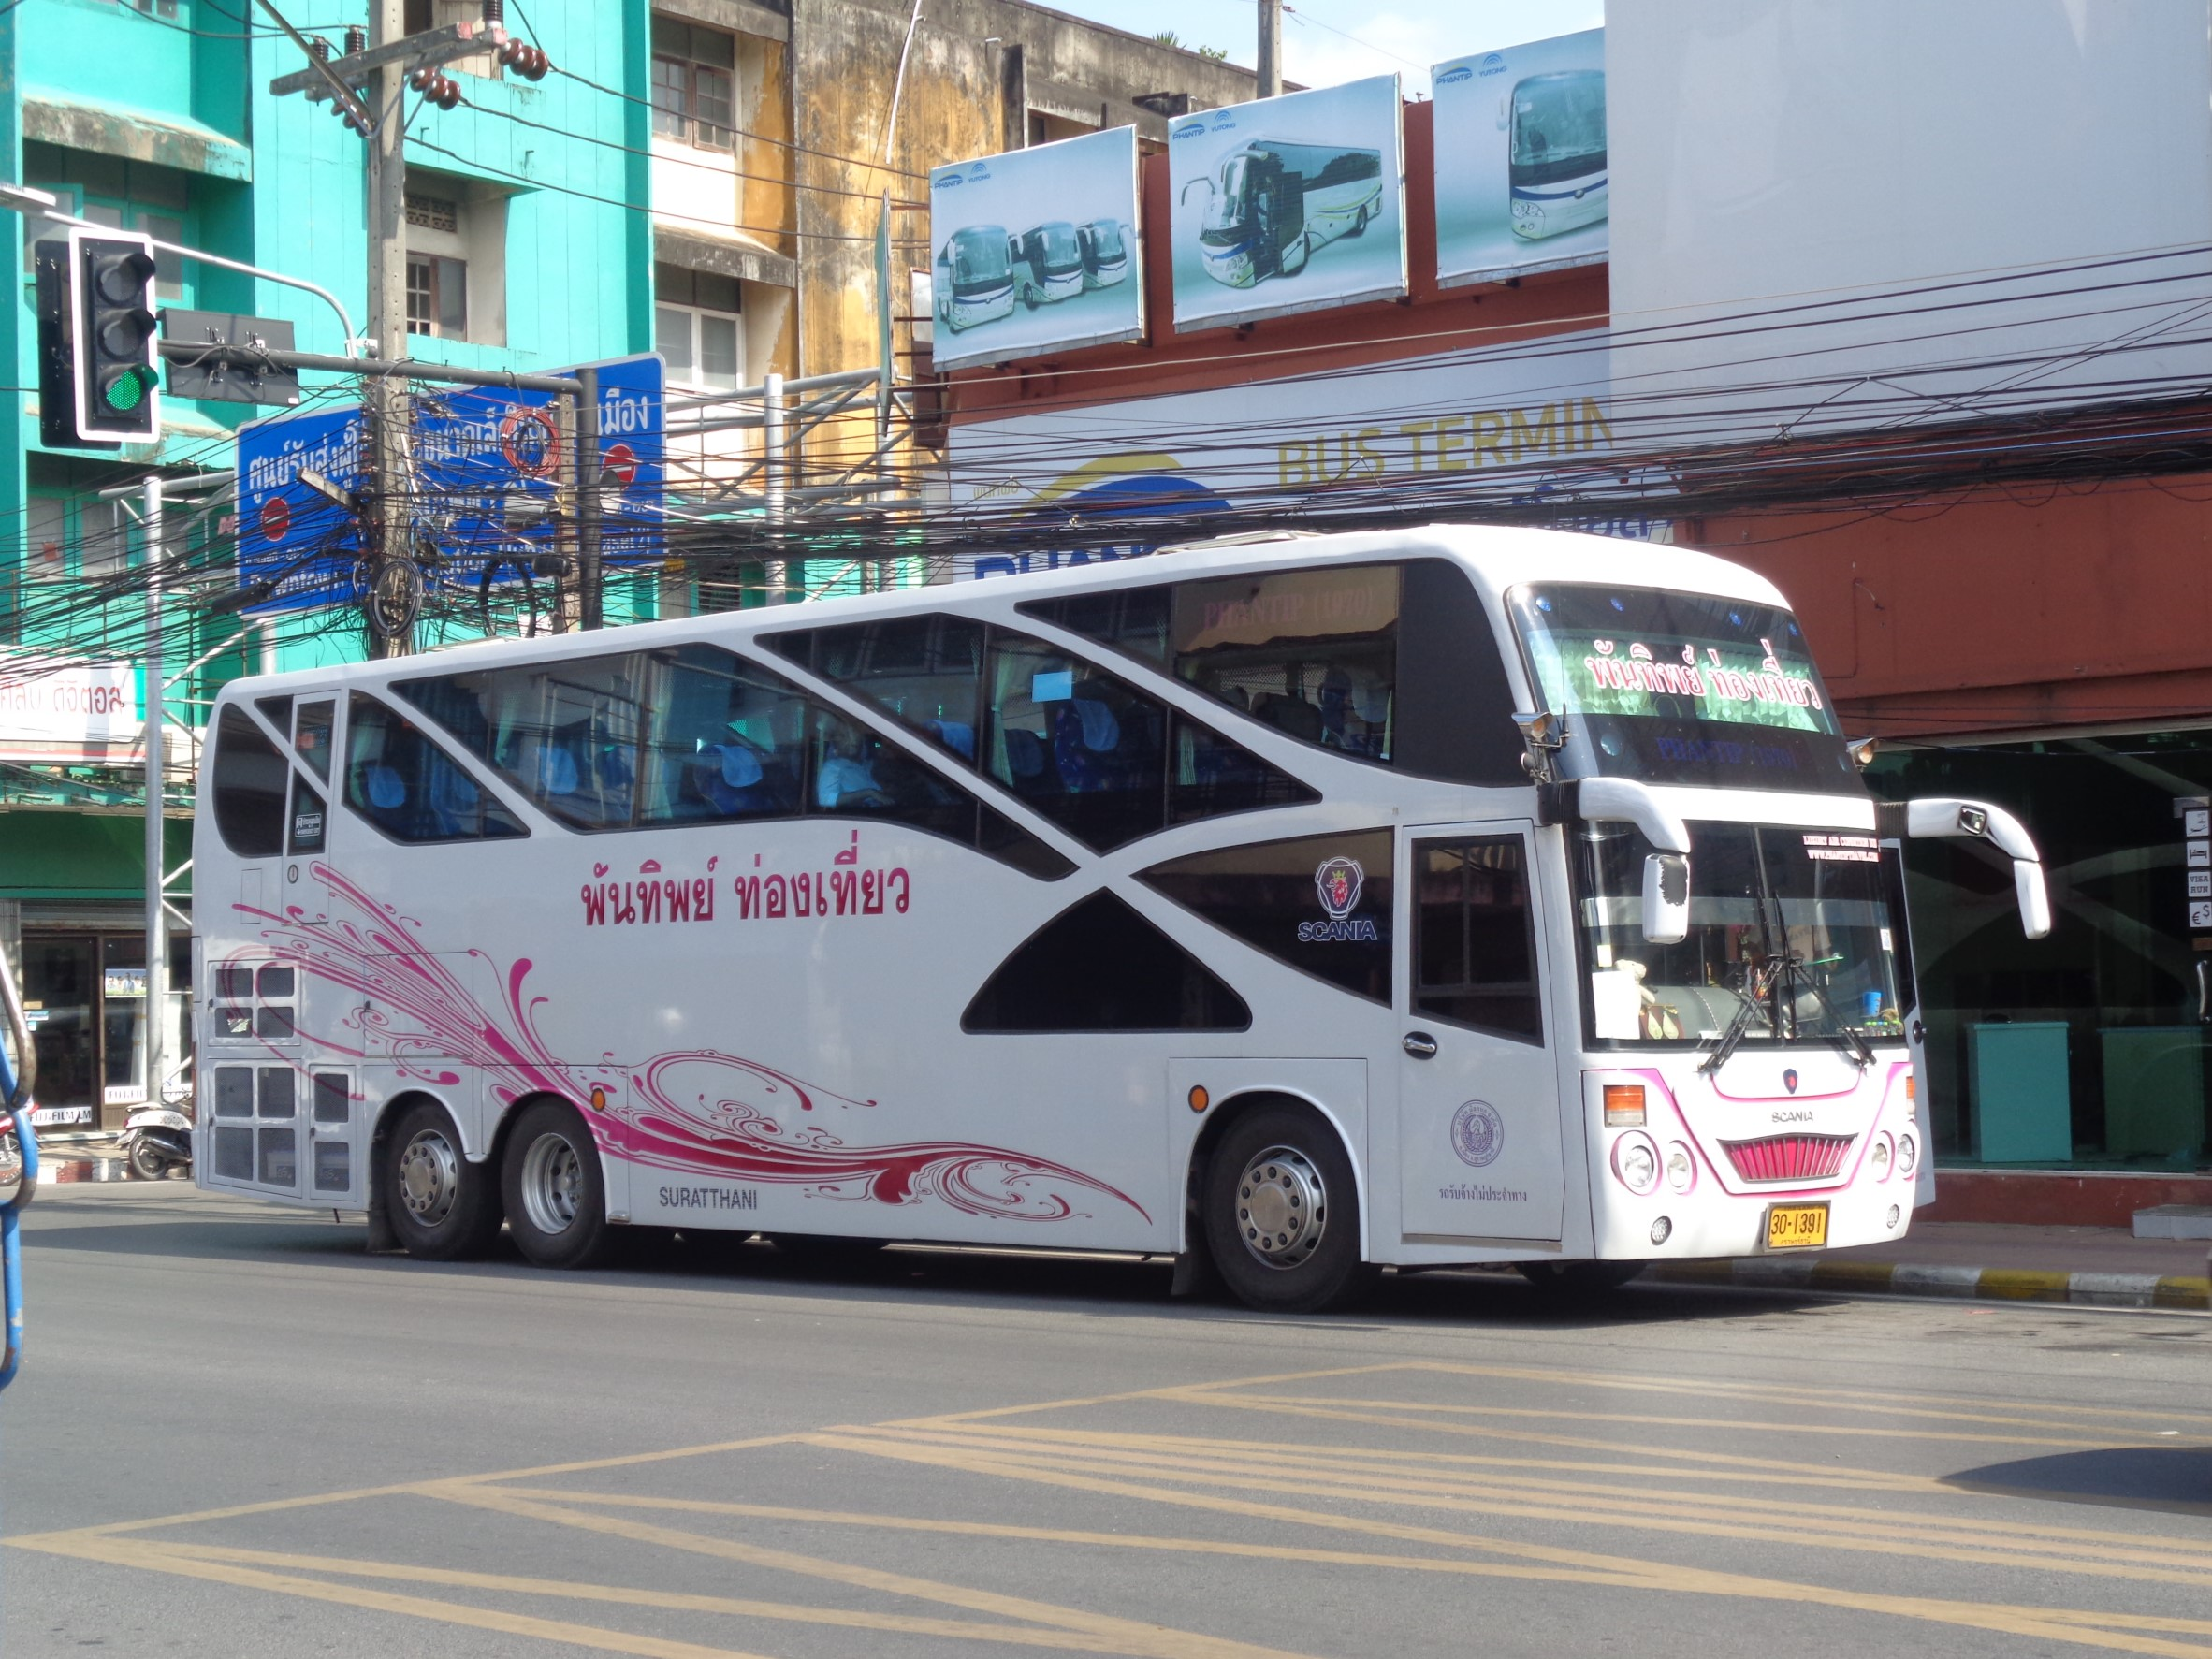 online bus travel booking Book bus tickets online with parveentravels, one of the best online bus ticket booking service in india book volvo, ac & sleeper buses online at an affordable price.